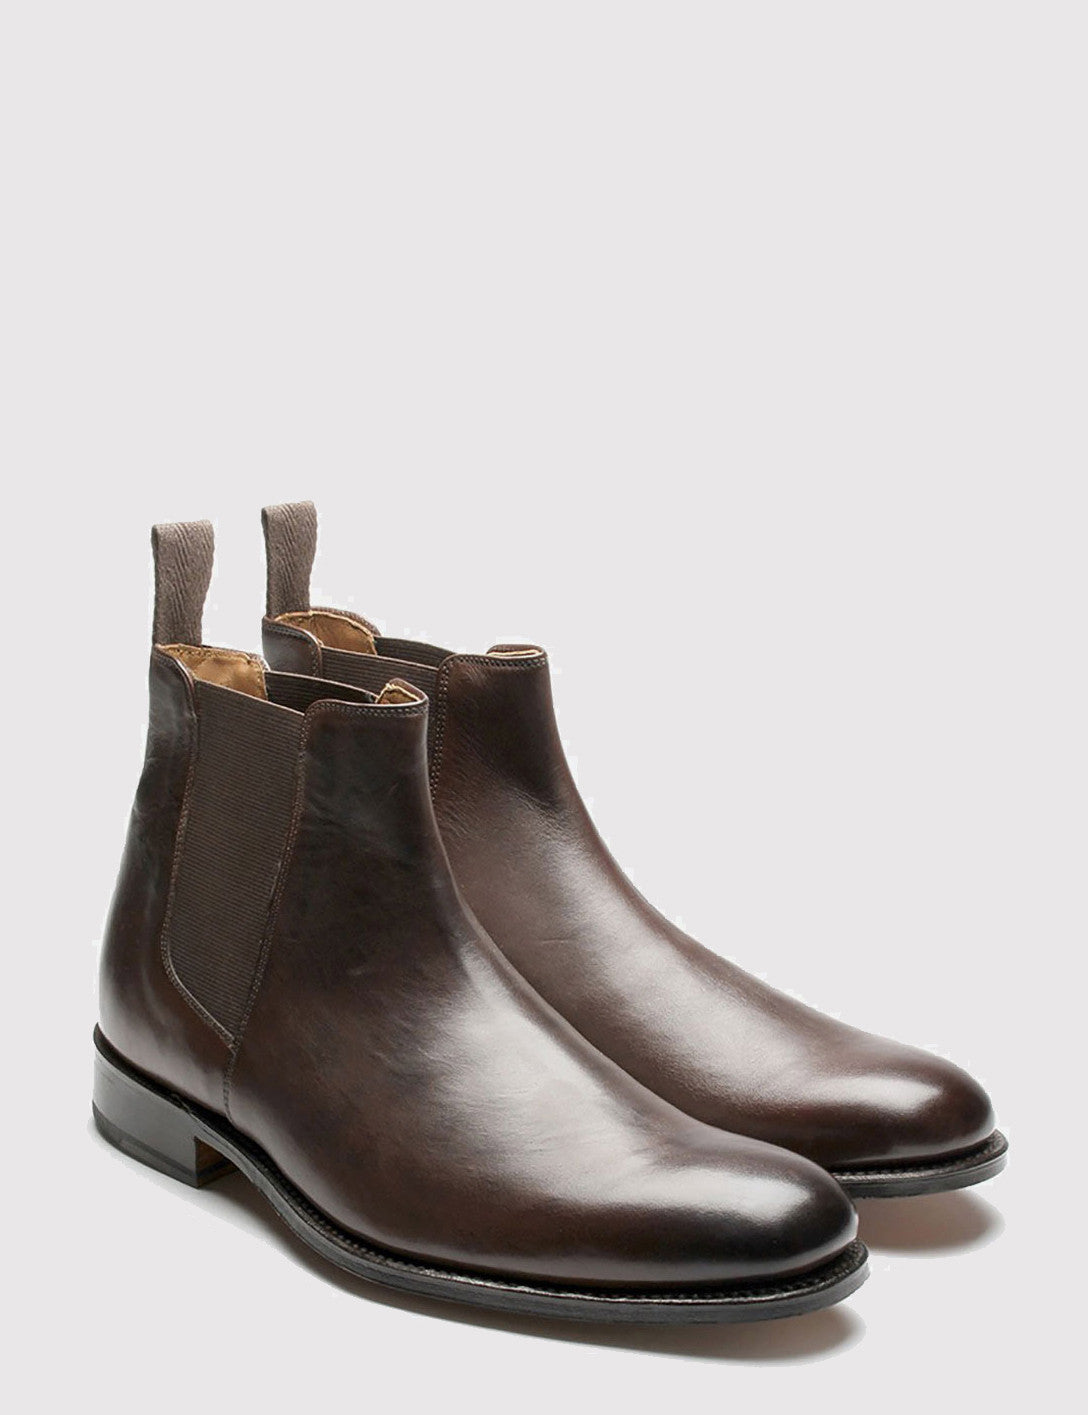 Grenson Declan Chelsea Boot - Brown